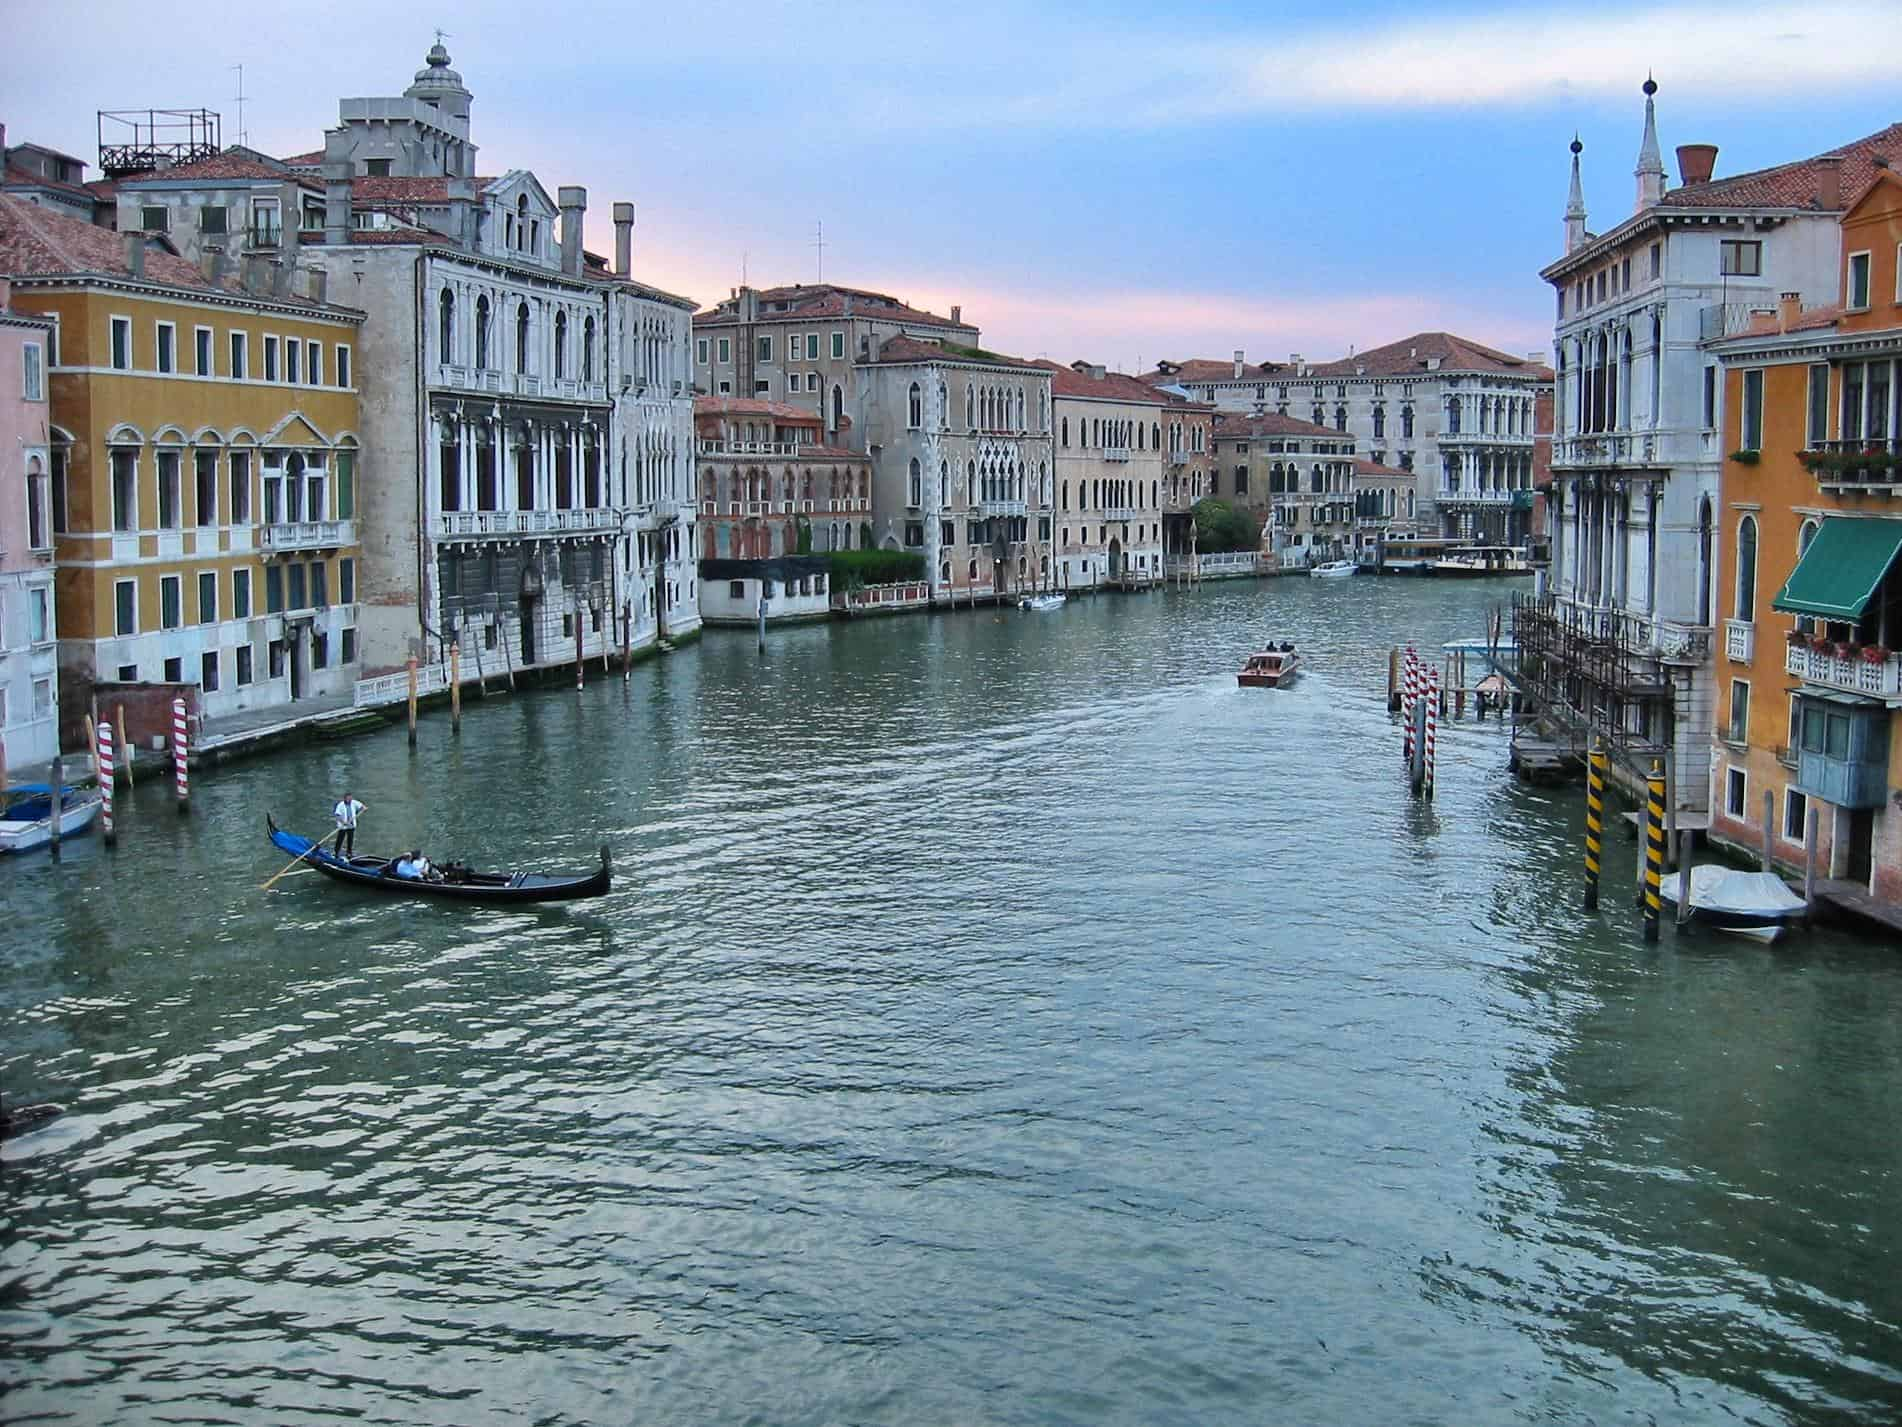 Venice, Italy: Seeing this unforgettable city before it sinks and is forgotten.